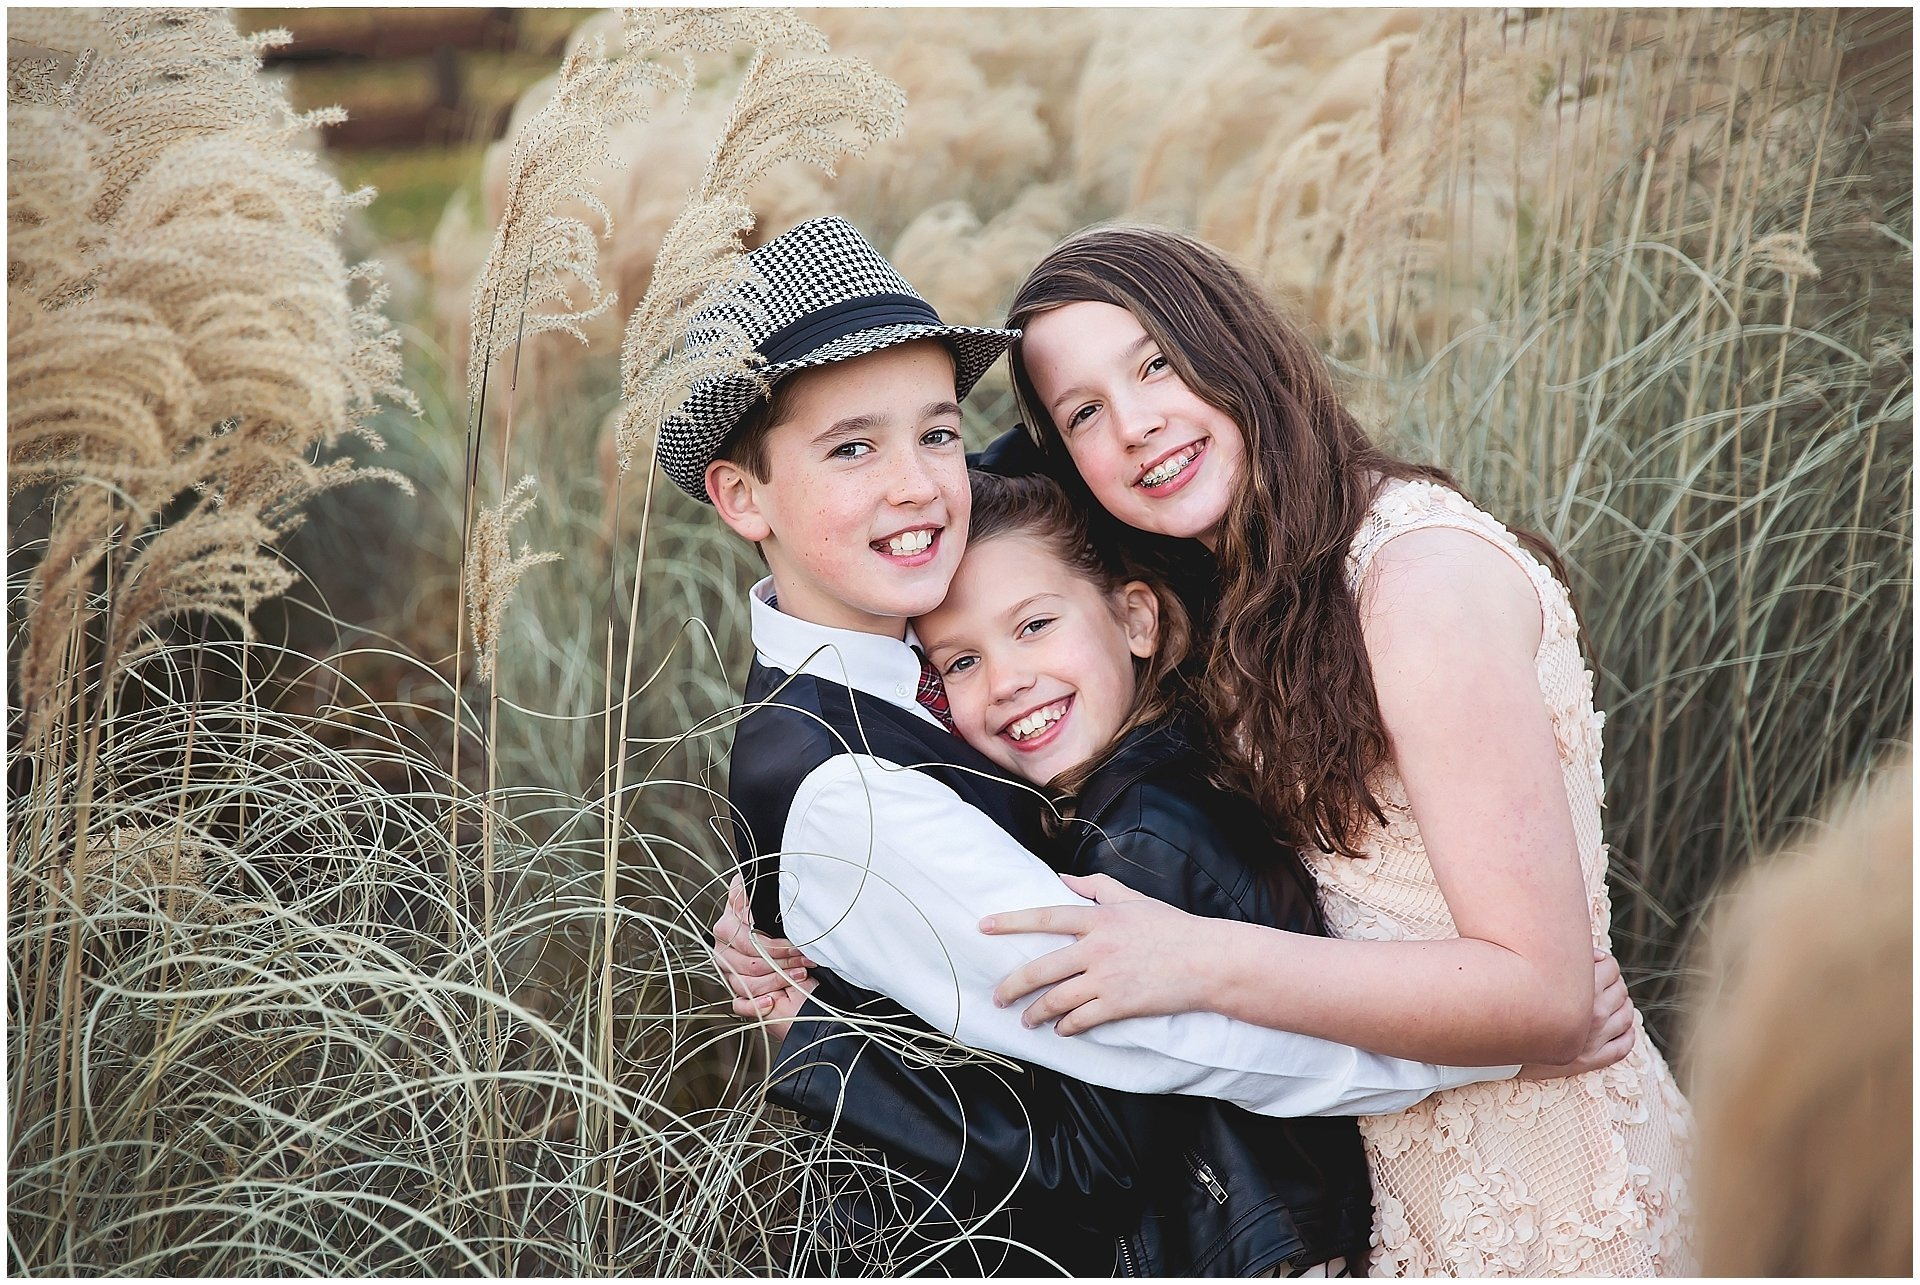 family photography, photographers in sycamore, photographers in saint charles, photographer in dekalb